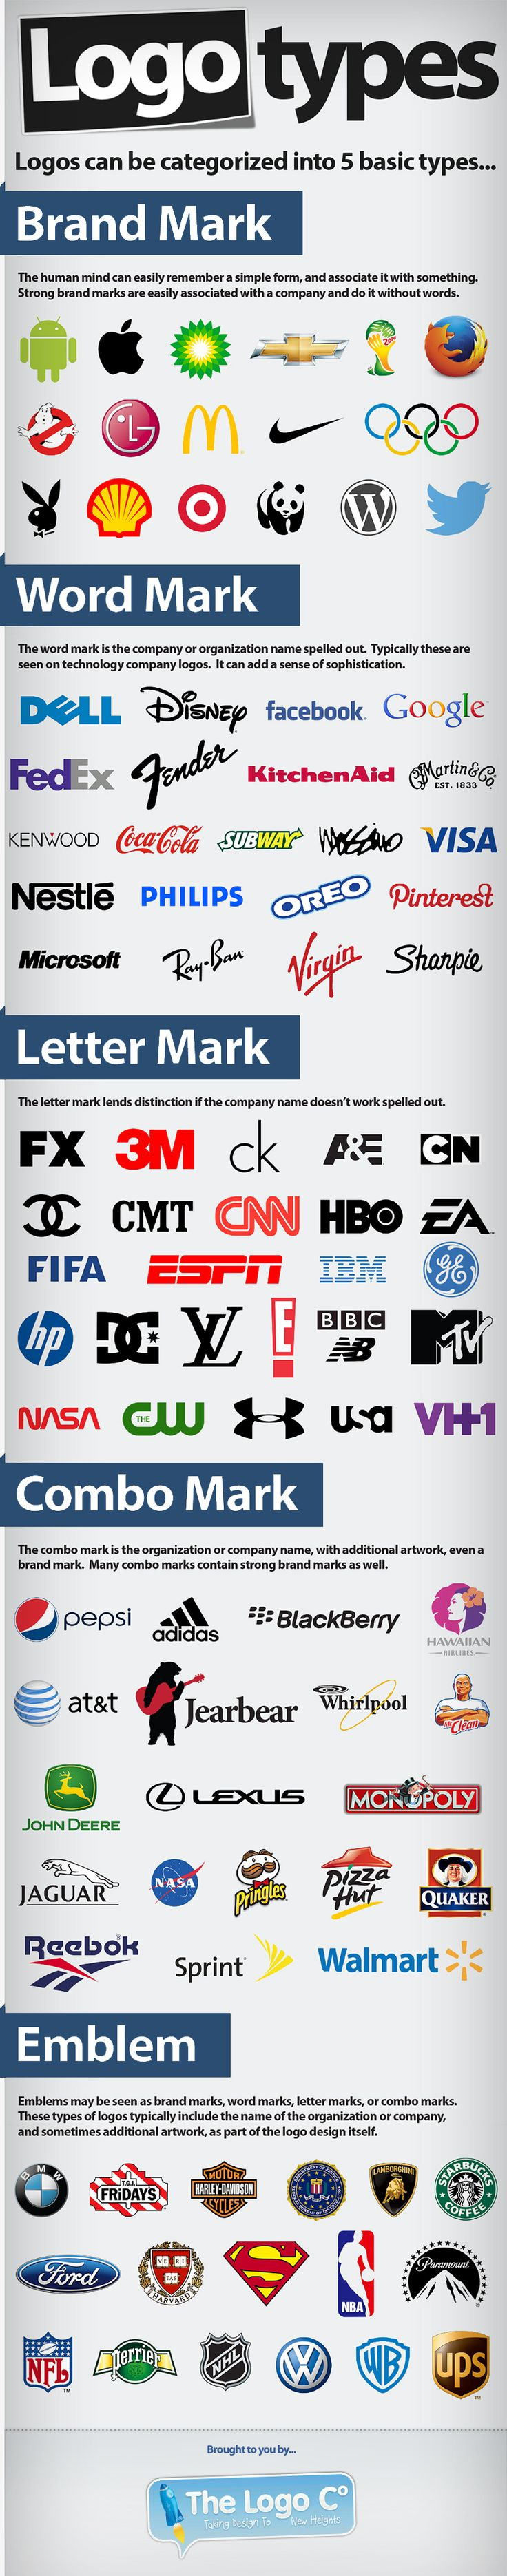 The 5 Logo Styles - What's Yours? - The Logo Company